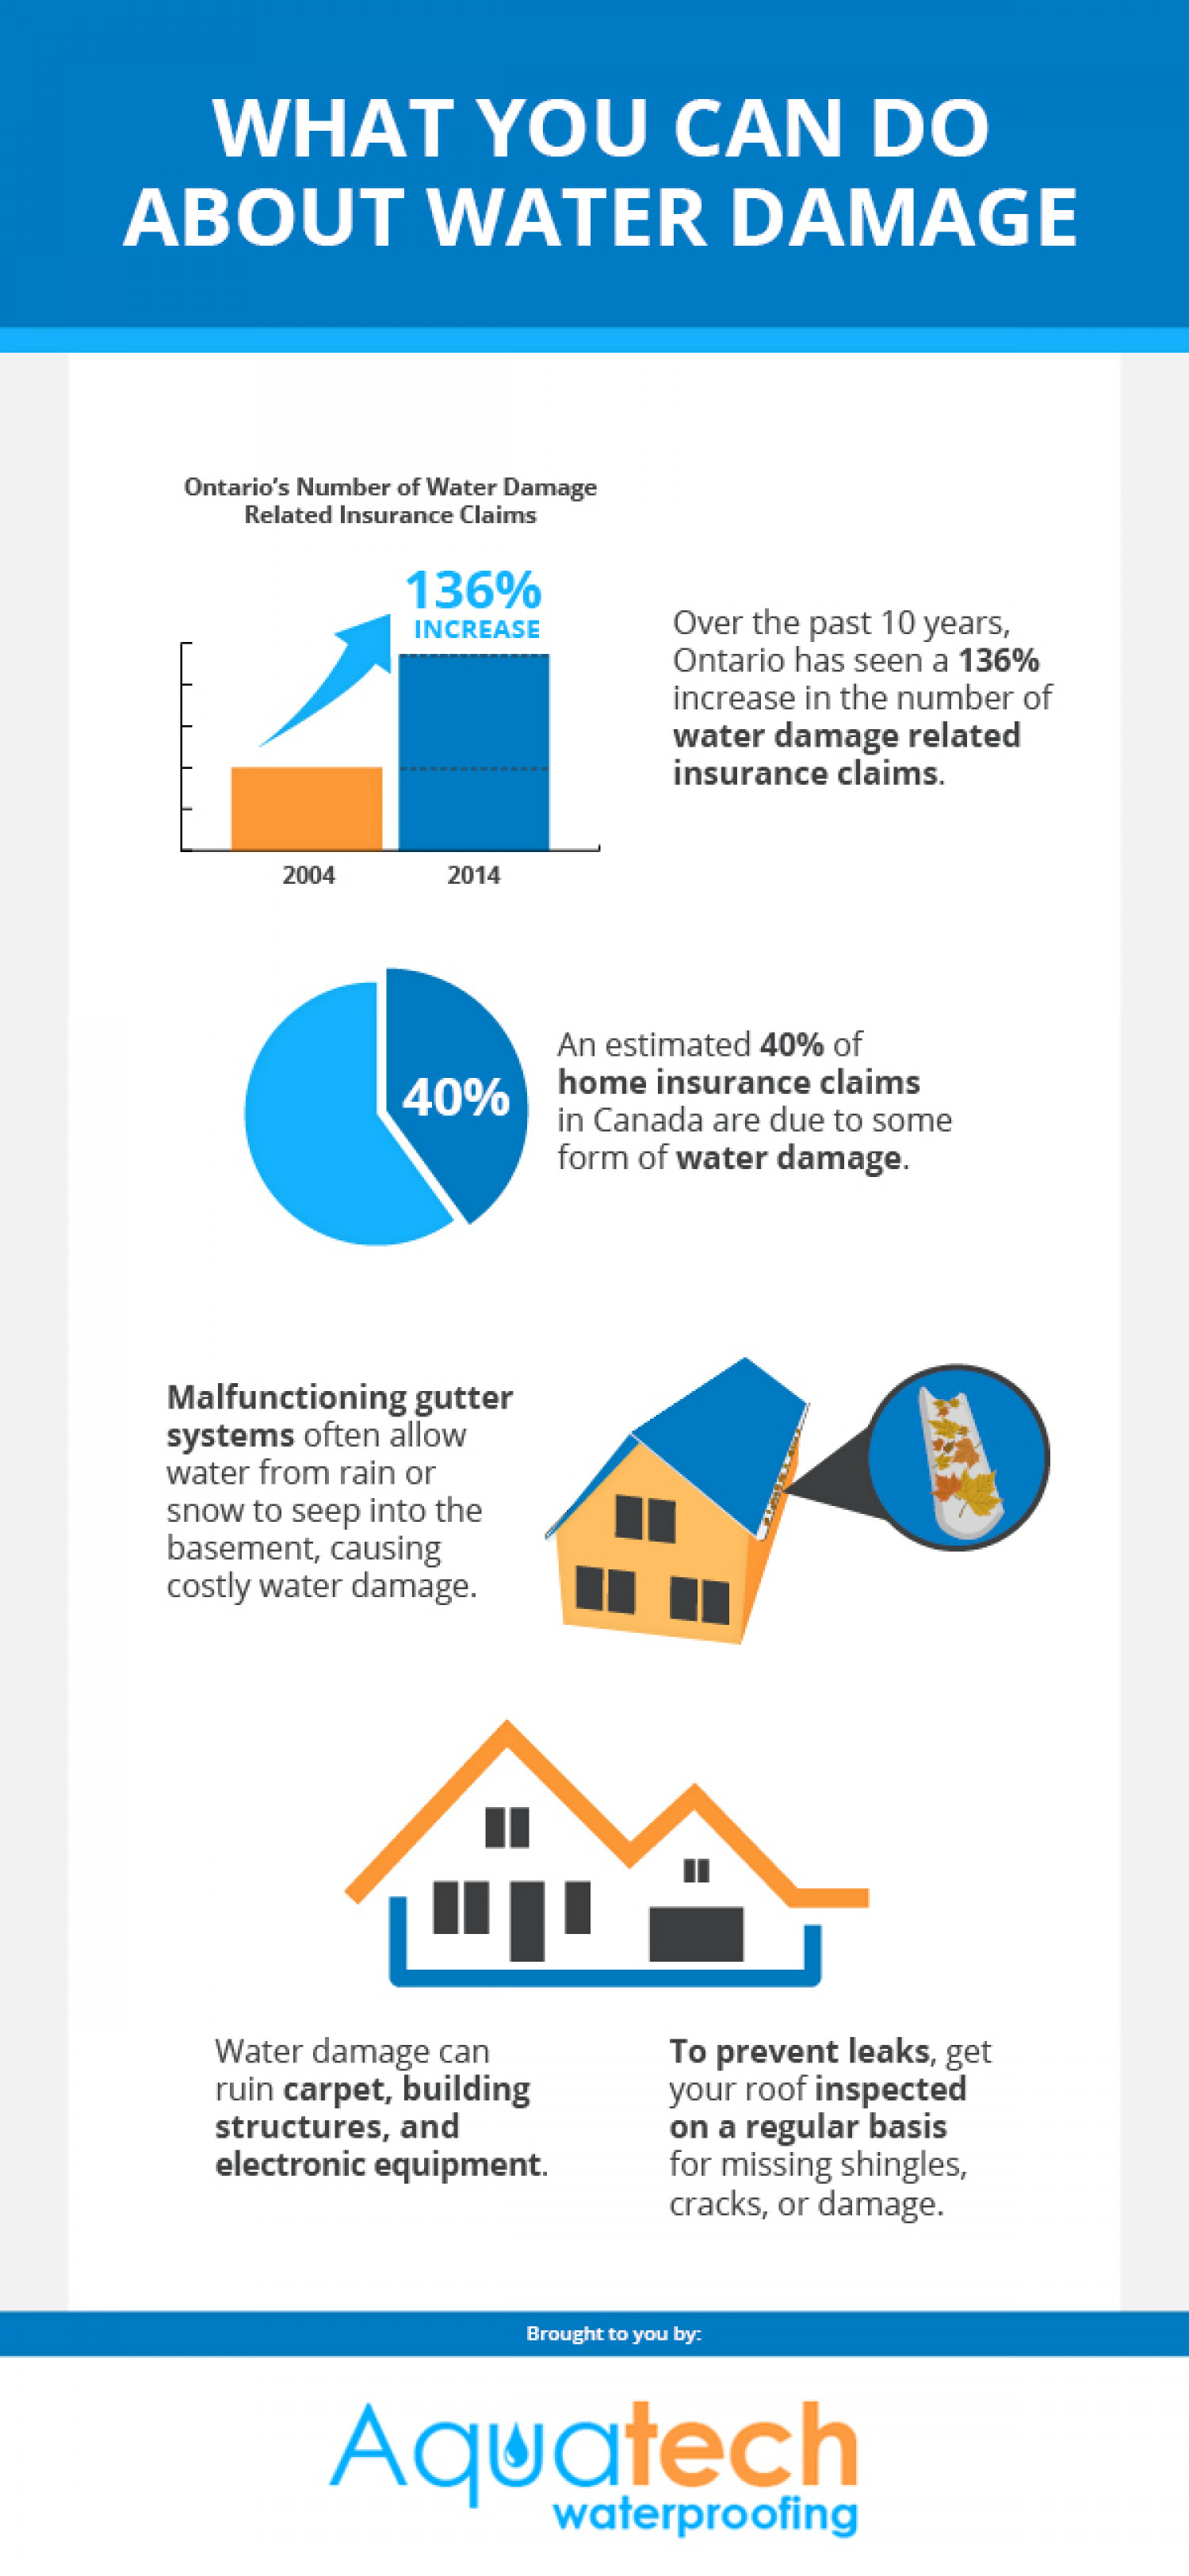 What You Can Do About Water Damage Infographic